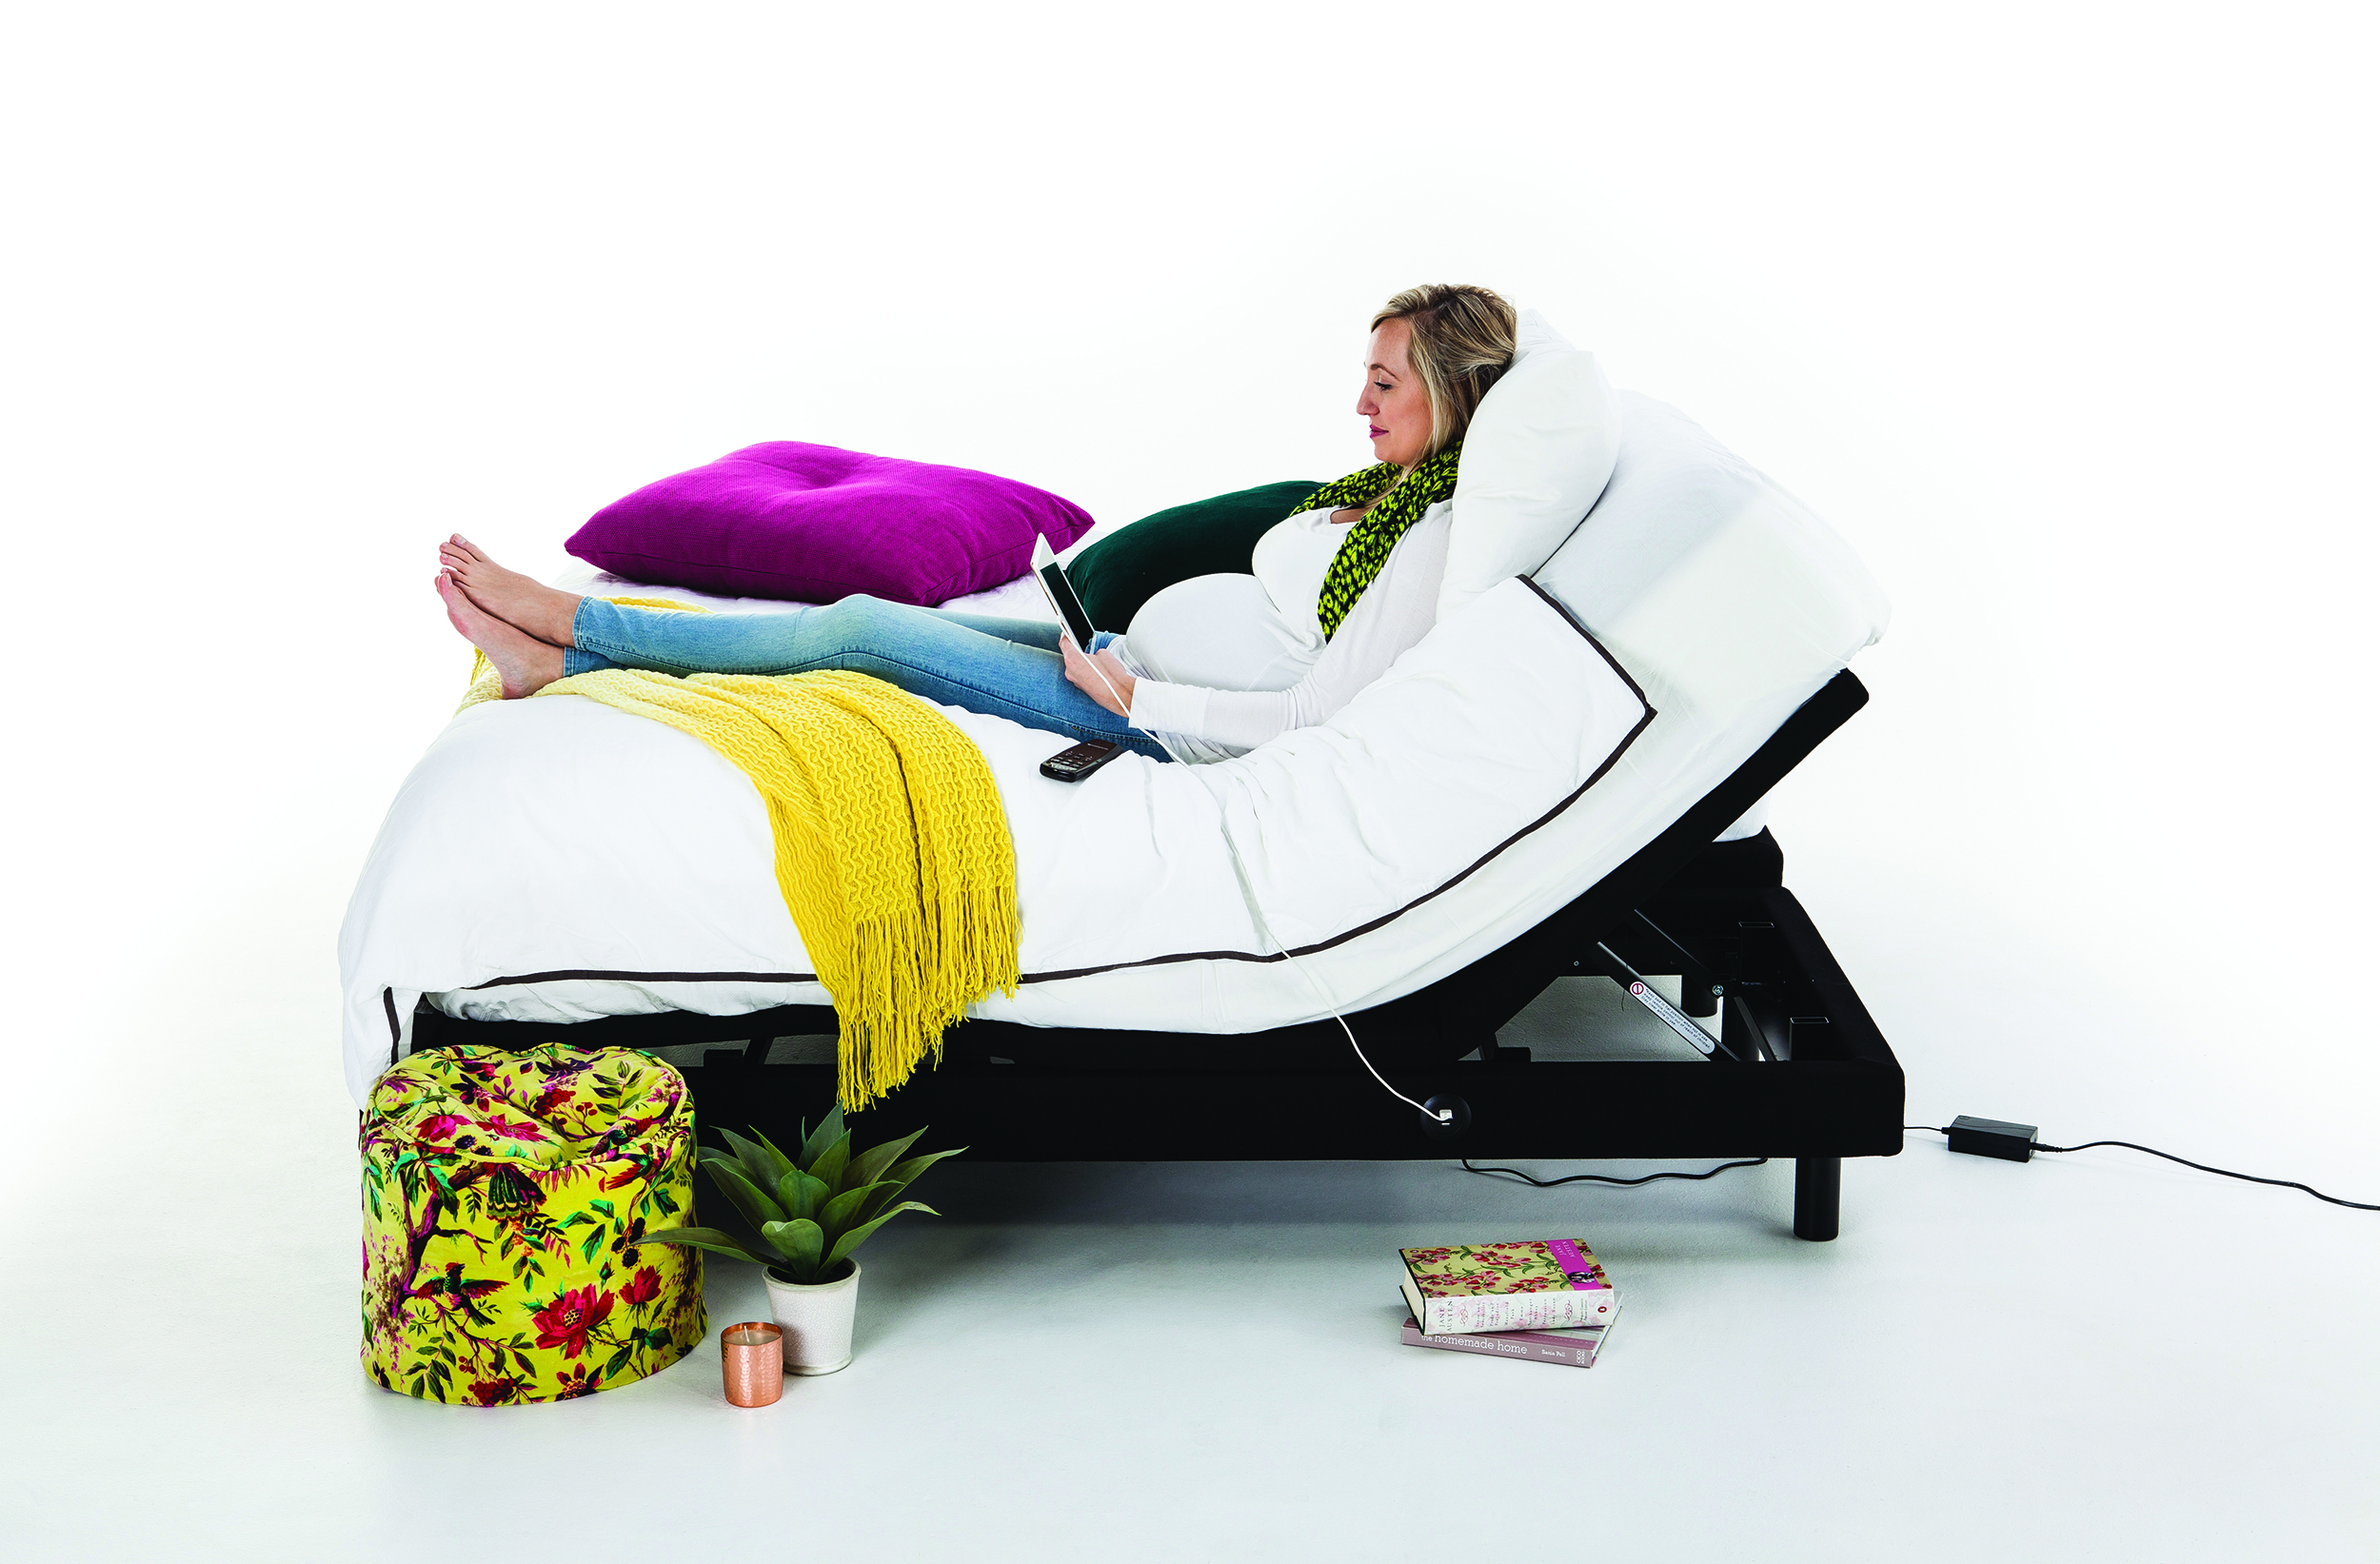 Sleepy's 500i adjustable bed base